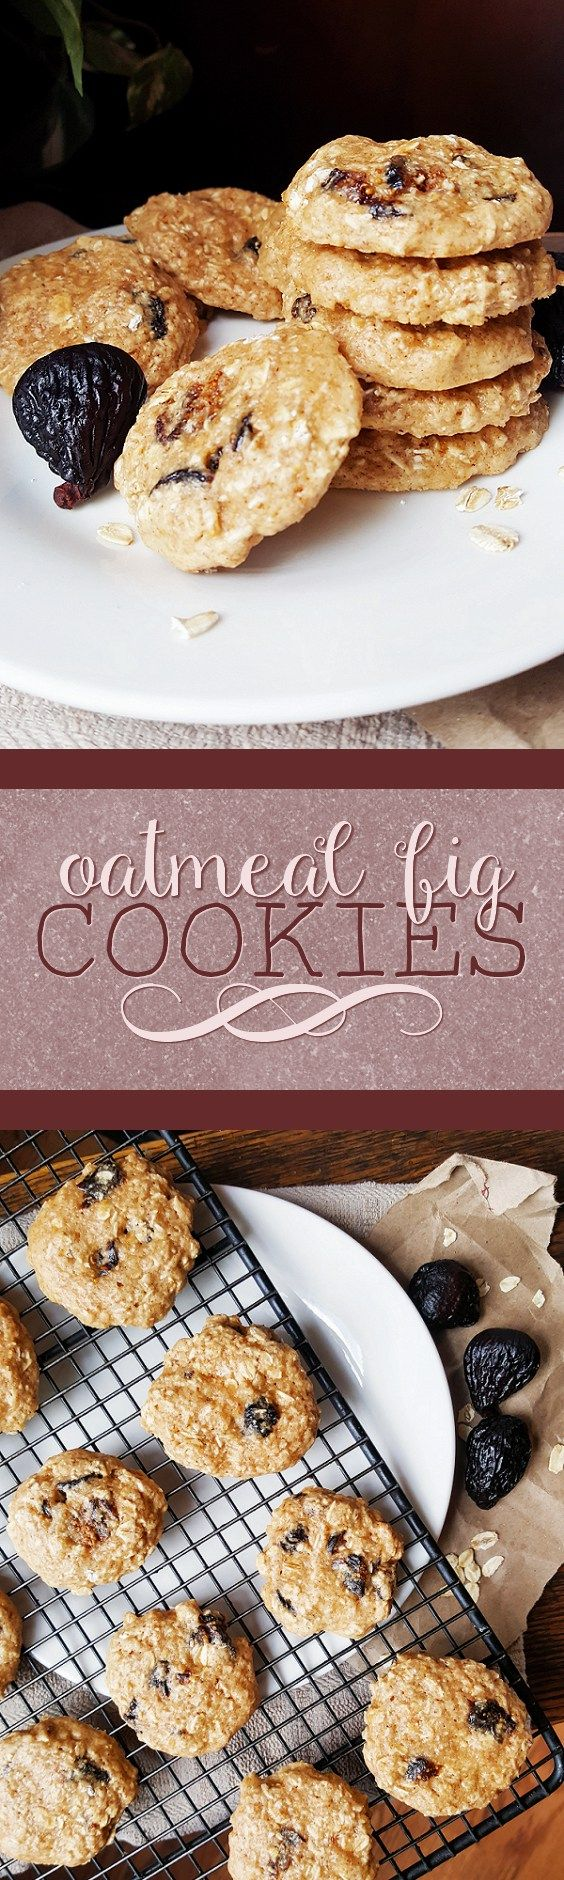 {Healthy, Low Calorie, Vegan} A classic favorite gets a new twist in these sweet, chewy oatmeal fig cookies! They're a delicious treat and they're good for you, too!